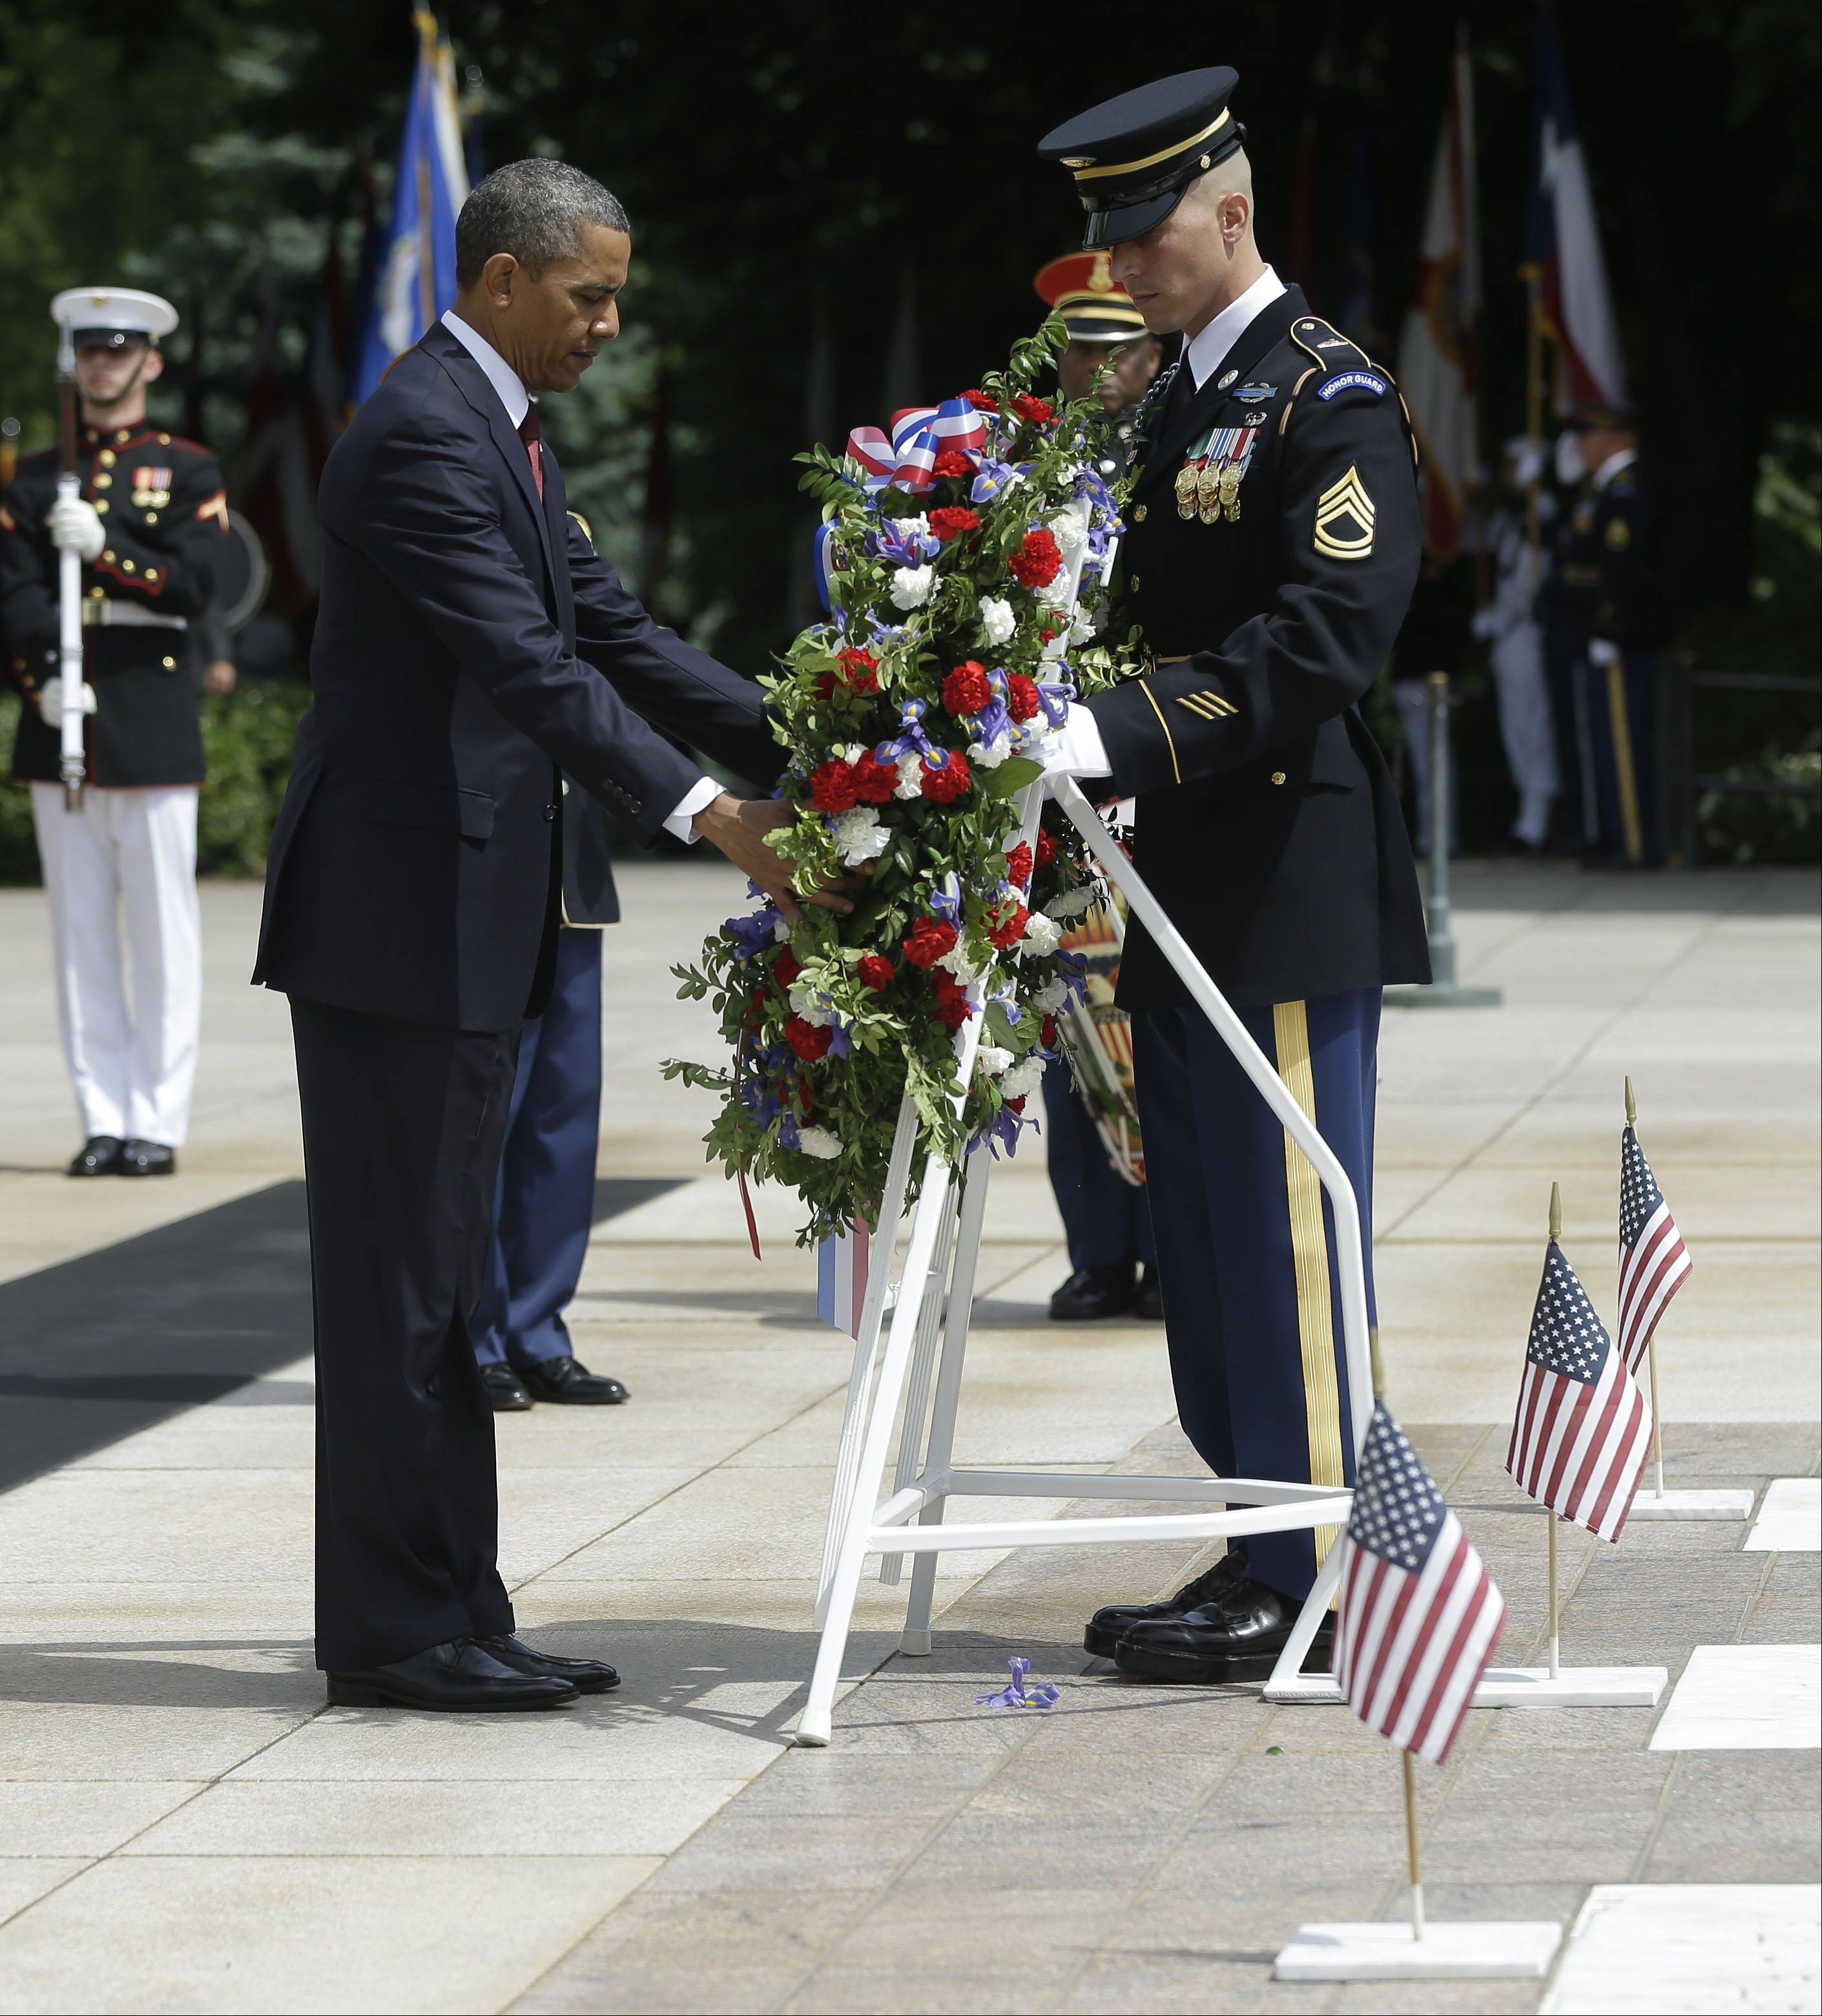 President Barack Obama participates in the wreath-laying ceremony at the Tomb of the Unknowns at Arlington National Cemetery on Memorial Day, May 27, 2013, in Arlington, Va.